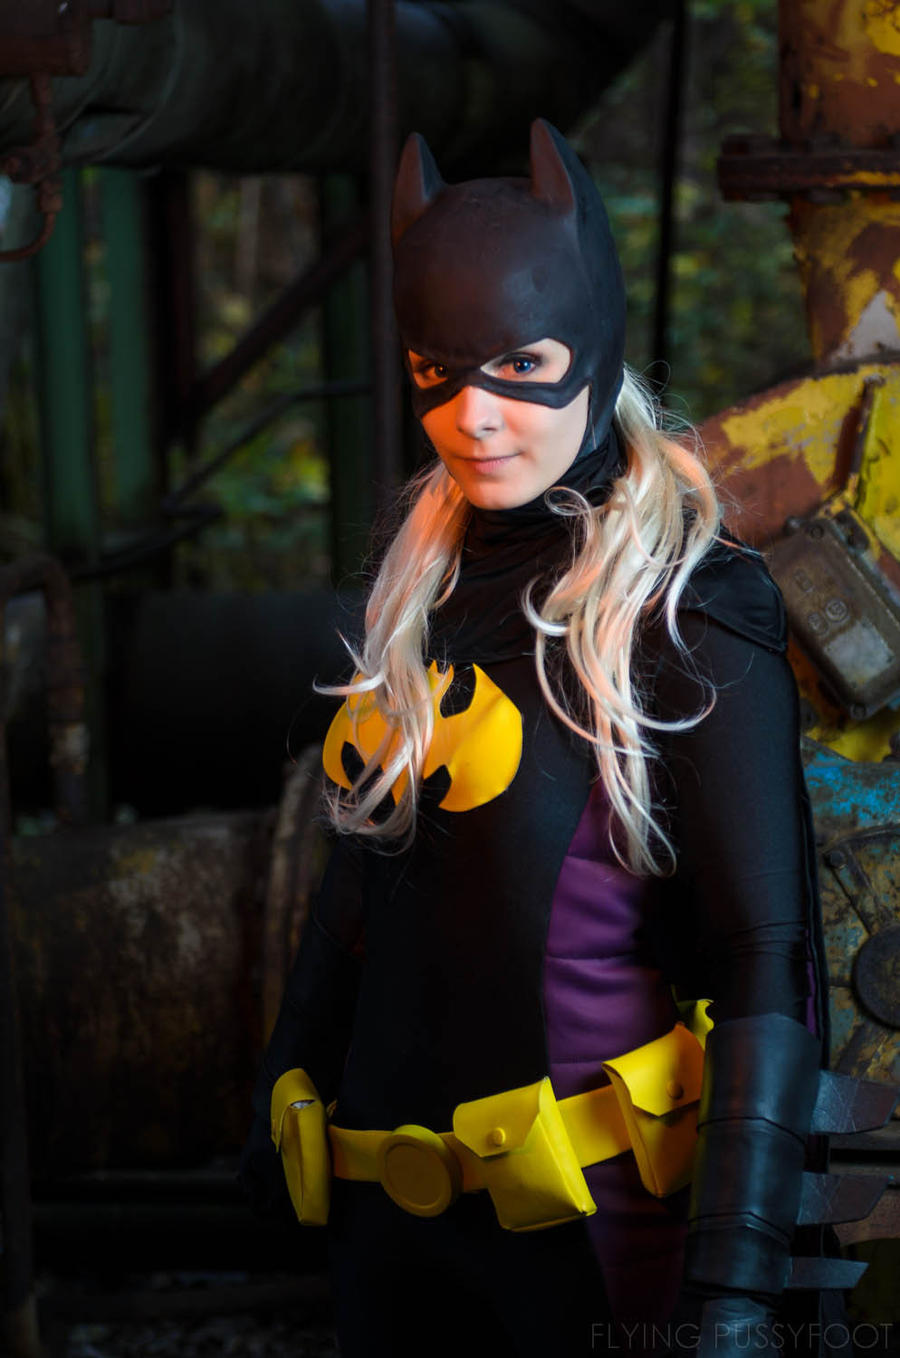 Time for some action! [Batgirl IV:Stephanie Brown] by vandrob59